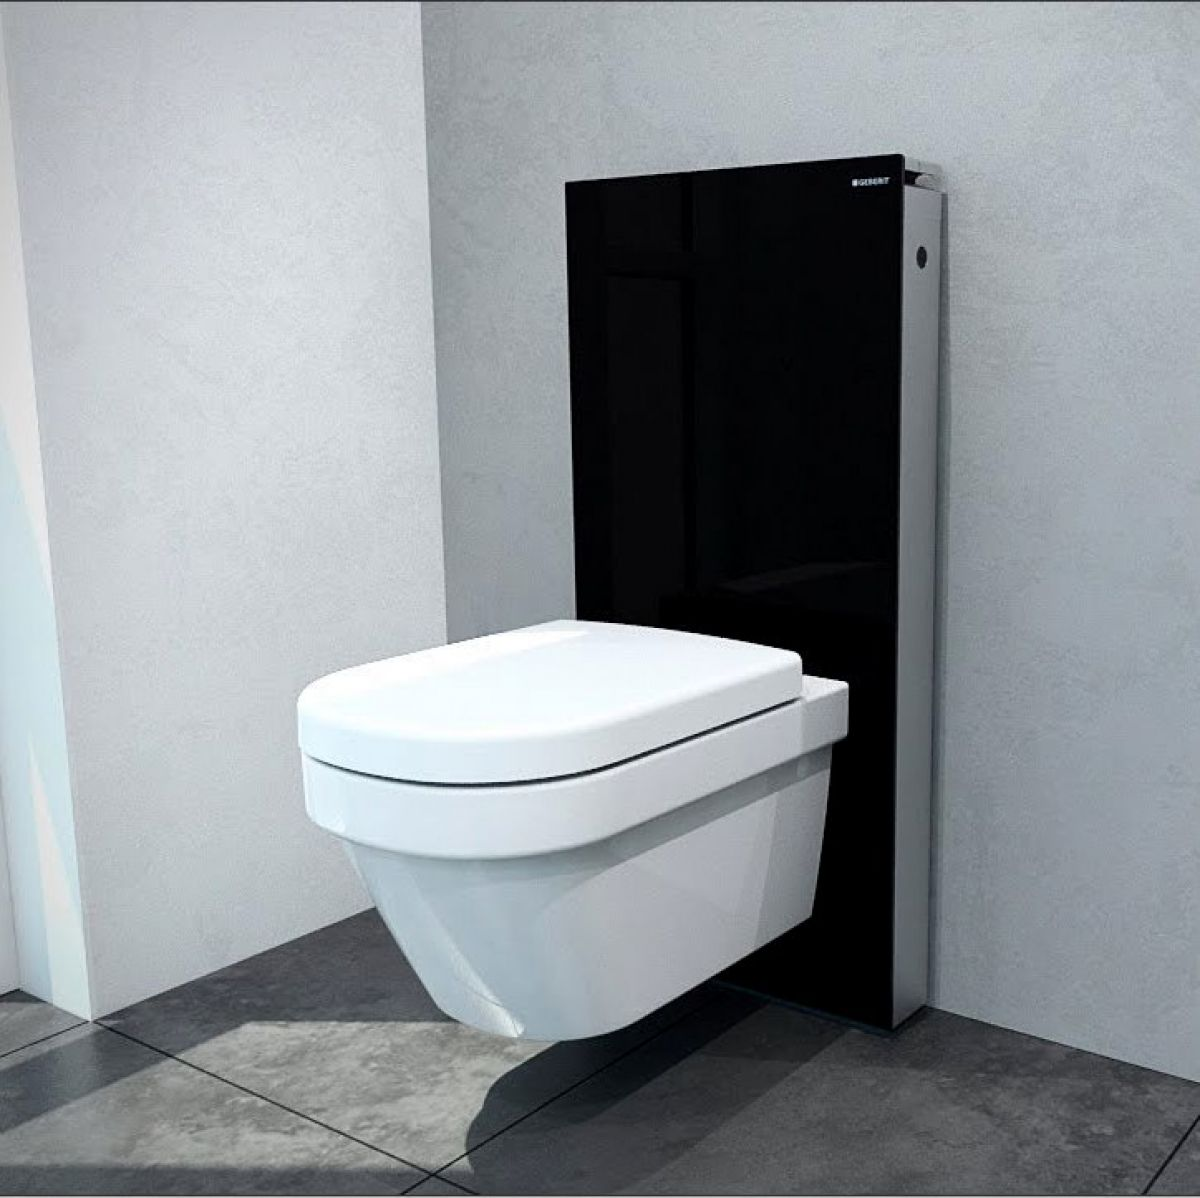 Geberit monolith for wall hung toilets uk bathrooms for Geberit products